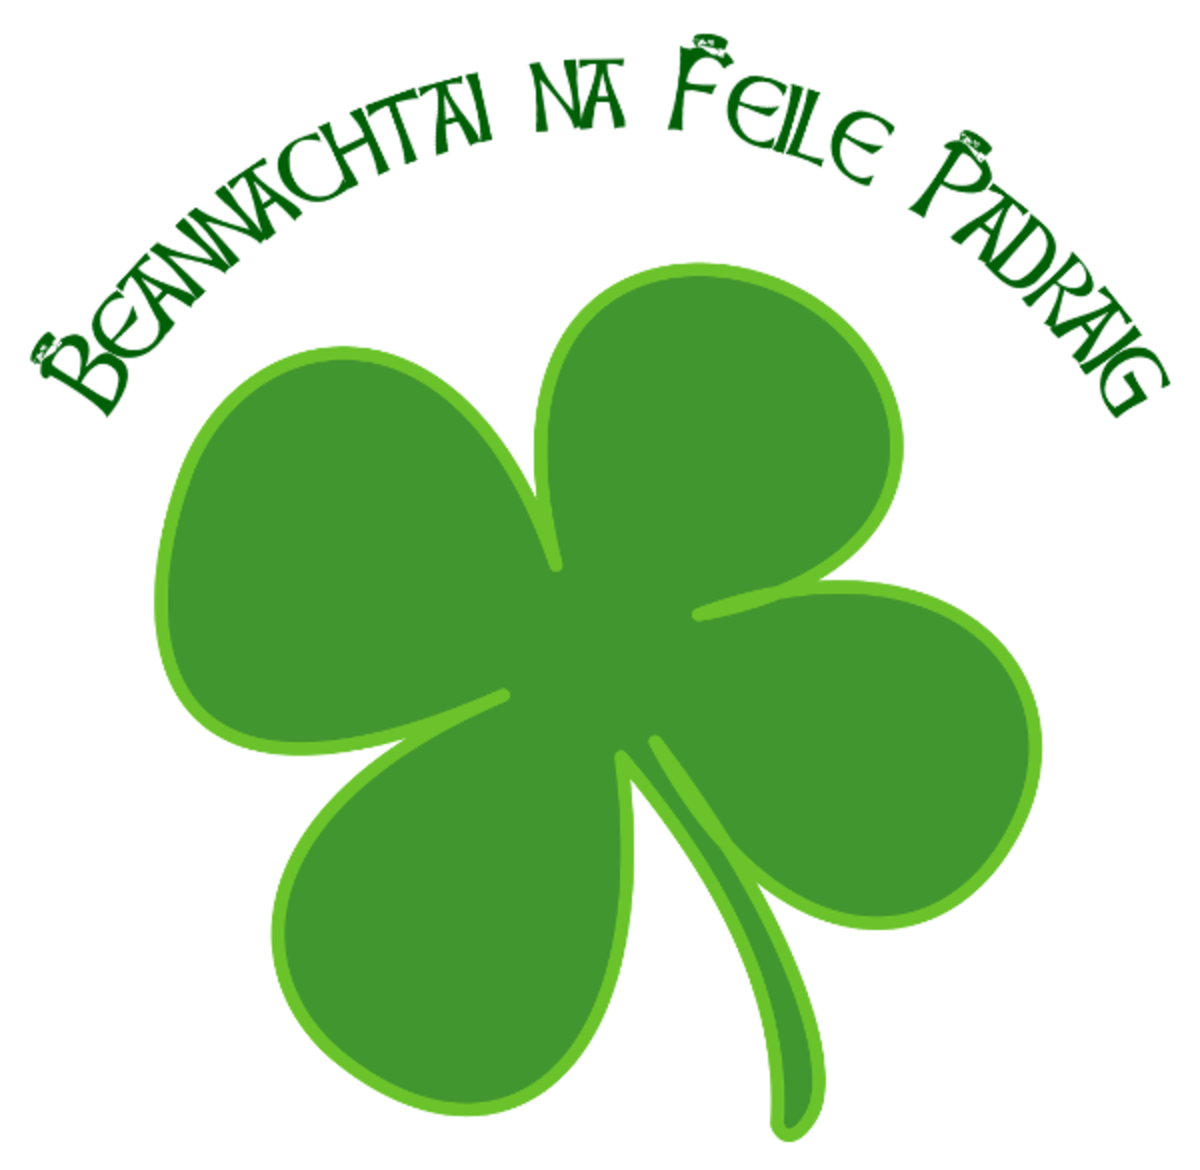 """St. Patrick's Day Blessing upon You"" written in Irish Language with Four-Leaf Clover"